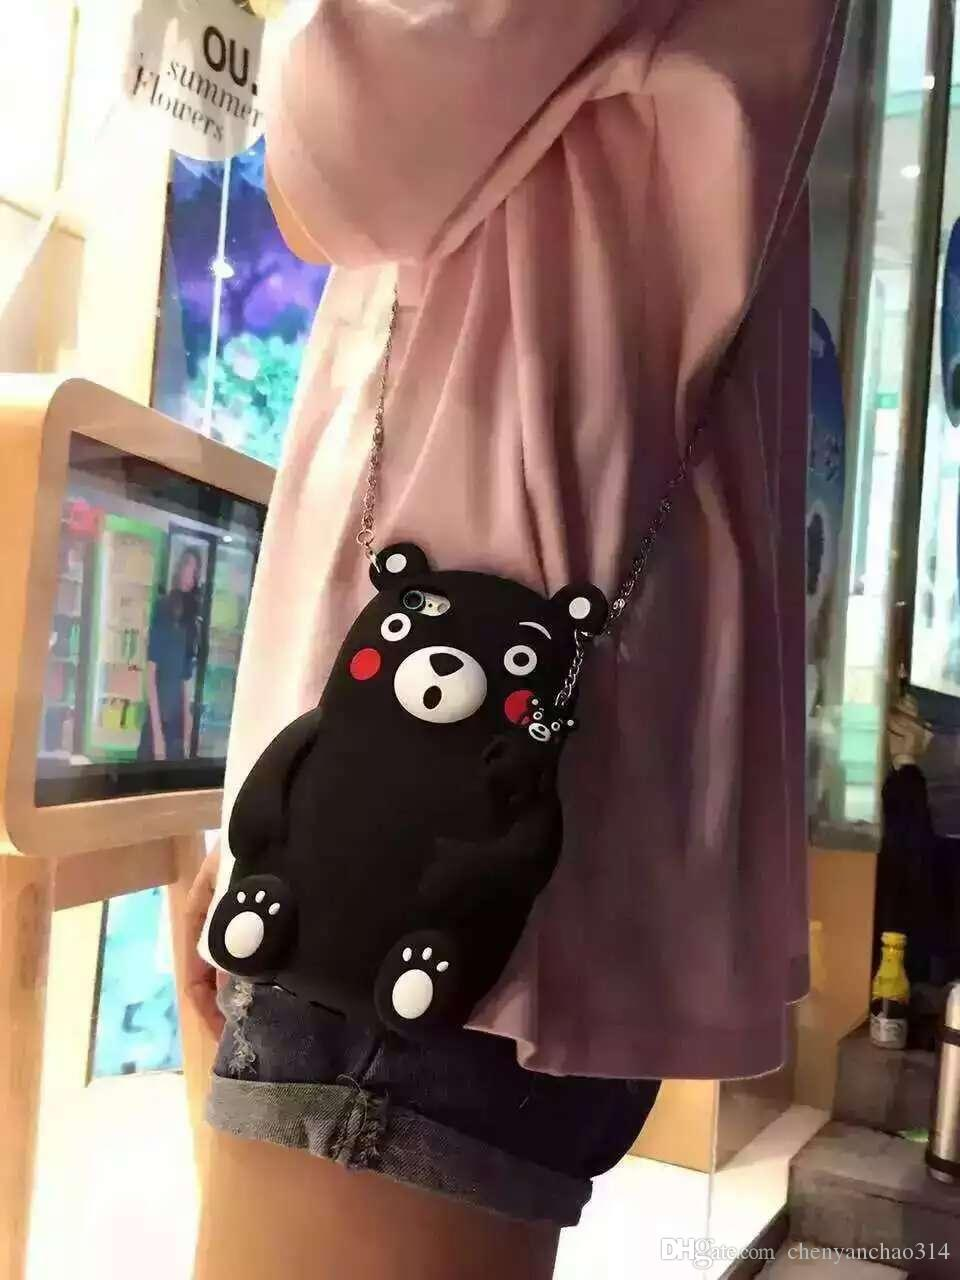 New Hot Japan Cartoon Cute 3D Stereo Kumamon Black Bear Soft Silicon Cover For iPhone 6 s + Cool Fashion Phone Cases Boys Girls